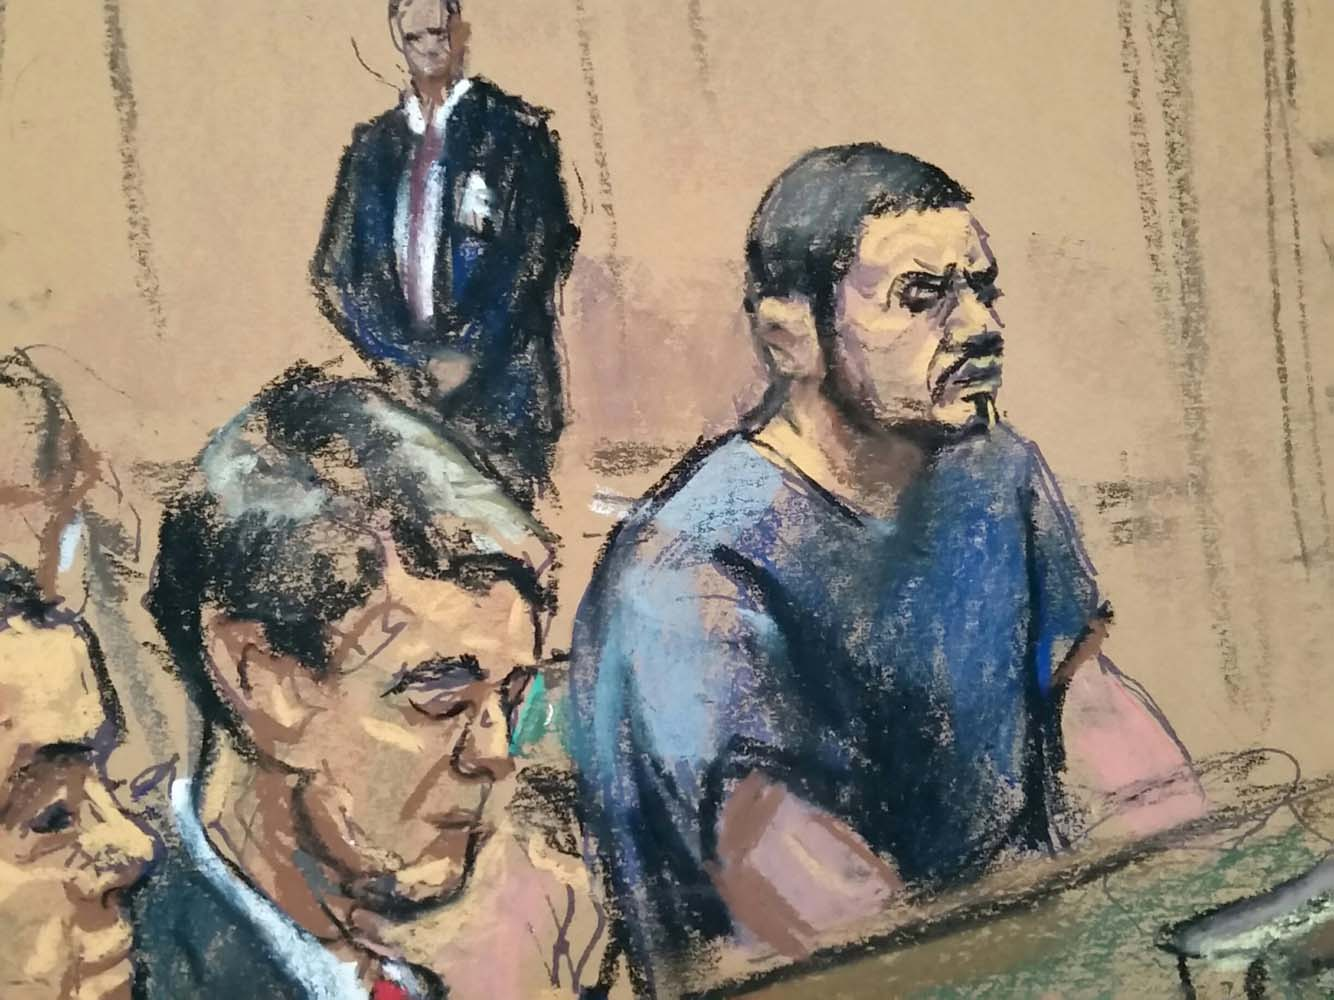 Assistant U.S. Attorneys Brendan Quigley sits by defendant Franqui Francisco Flores de Freitas (R), in federal court in Manhattan, New York, December 17, 2015, in this courtroom sketch. The two nephews of Venezuela's first lady pleaded not guilty on Thursday to U.S. charges that they conspired to import cocaine into the United States. REUTERS/Jane Rosenberg ATTENTION EDITORS - THIS PICTURE WAS PROVIDED BY A THIRD PARTY. REUTERS IS UNABLE TO INDEPENDENTLY VERIFY THE AUTHENTICITY, CONTENT, LOCATION OR DATE OF THIS IMAGE. EDITORIAL USE ONLY. NOT FOR SALE FOR MARKETING OR ADVERTISING CAMPAIGNS. NO RESALES. NO ARCHIVE. THIS PICTURE IS DISTRIBUTED EXACTLY AS RECEIVED BY REUTERS, AS A SERVICE TO CLIENTS